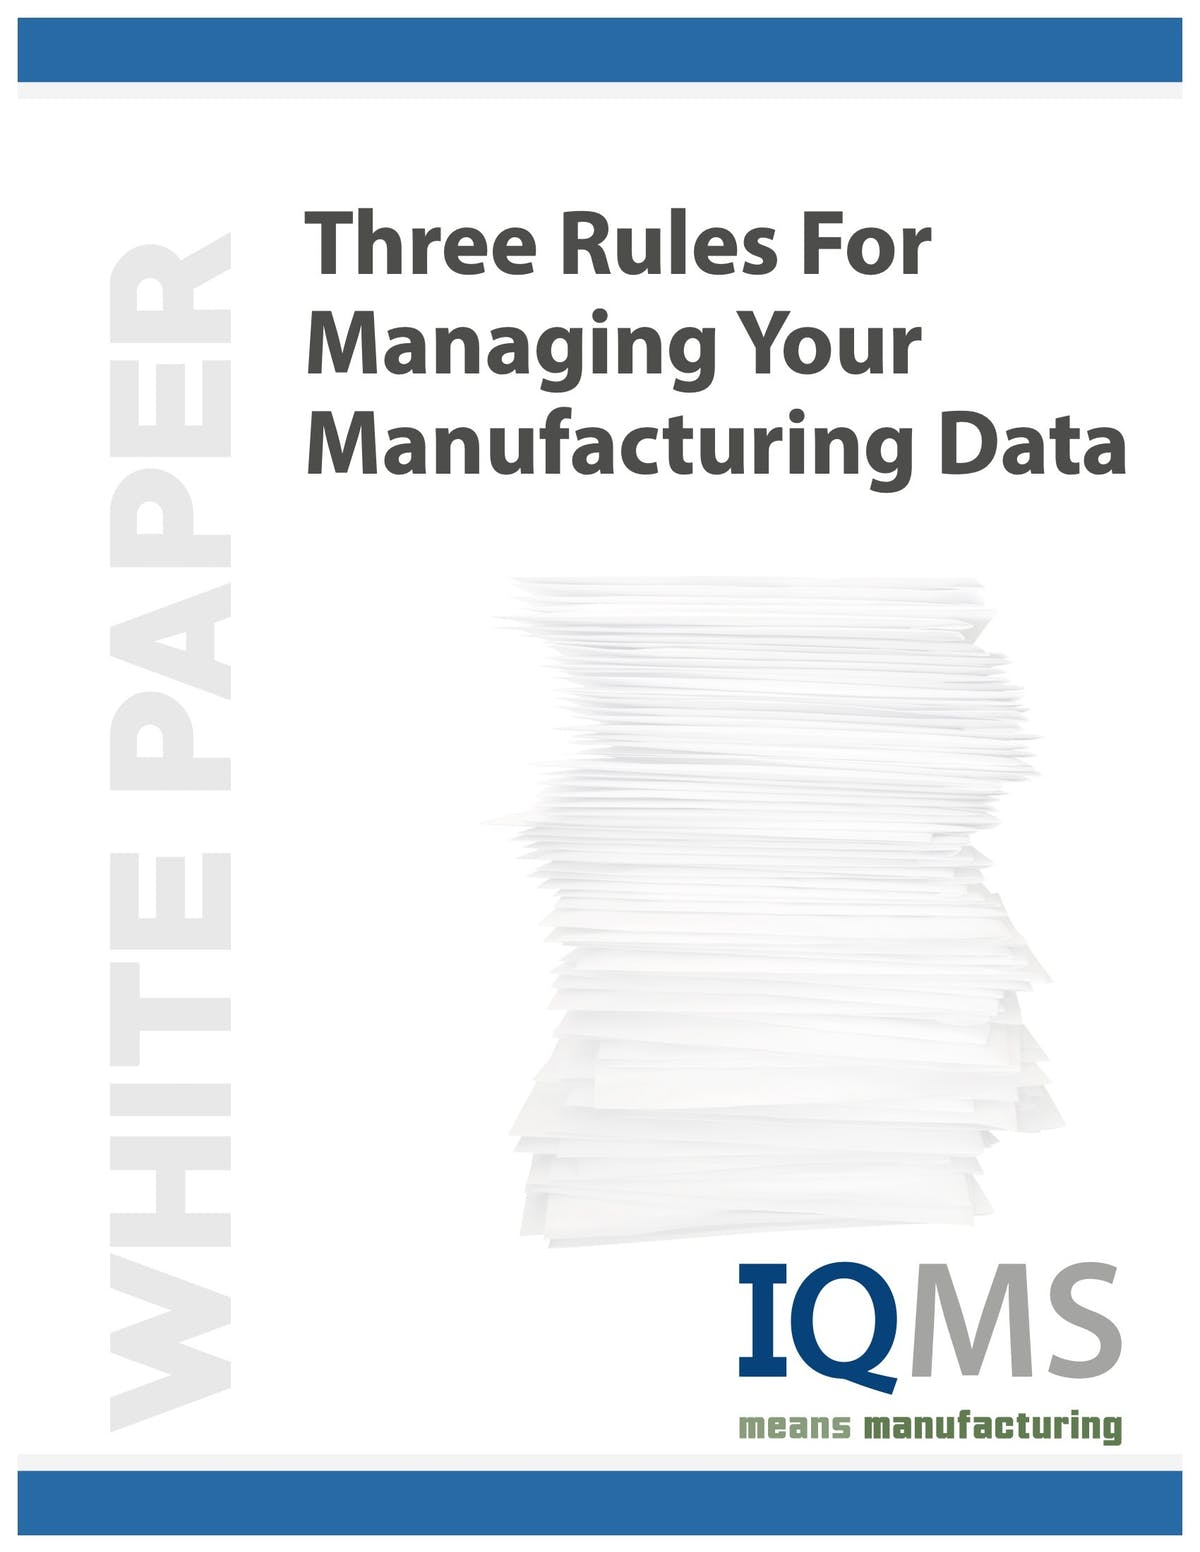 EnterpriseIQ White Paper - Three Rules for Managing Your Manufacturing Data